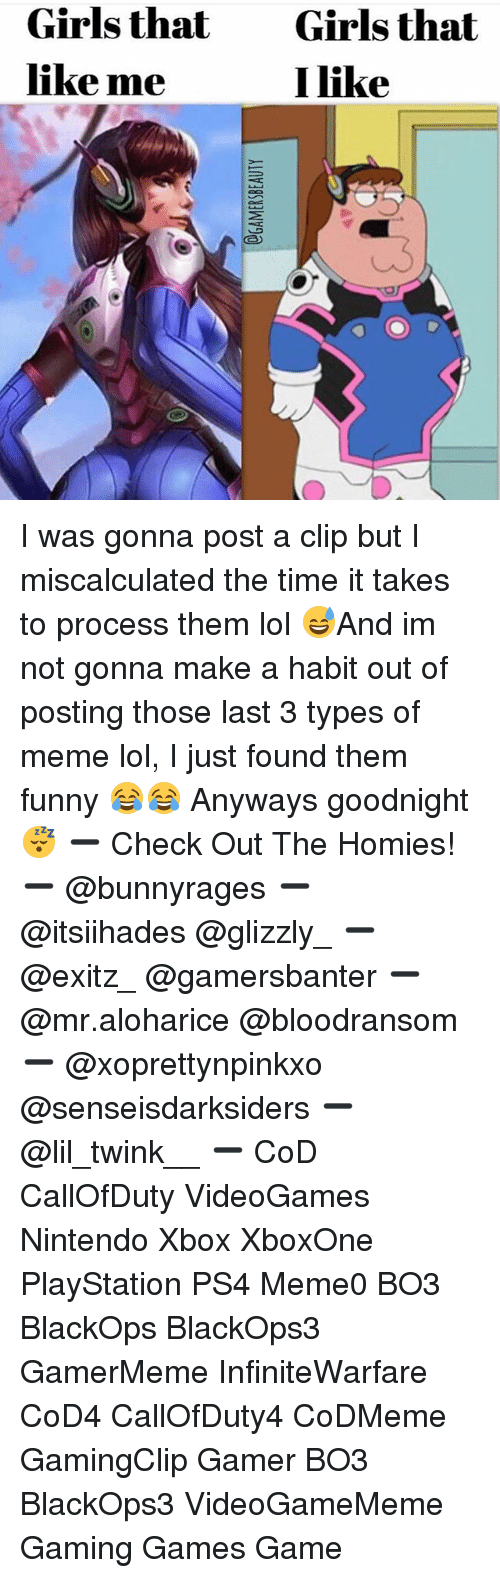 Habited: Girls that  like me  Girls that  I like I was gonna post a clip but I miscalculated the time it takes to process them lol 😅And im not gonna make a habit out of posting those last 3 types of meme lol, I just found them funny 😂😂 Anyways goodnight 😴 ➖ Check Out The Homies! ➖ @bunnyrages ➖ @itsiihades @glizzly_ ➖ @exitz_ @gamersbanter ➖ @mr.aloharice @bloodransom ➖ @xoprettynpinkxo @senseisdarksiders ➖ @lil_twink__ ➖ CoD CallOfDuty VideoGames Nintendo Xbox XboxOne PlayStation PS4 Meme0 BO3 BlackOps BlackOps3 GamerMeme InfiniteWarfare CoD4 CallOfDuty4 CoDMeme GamingClip Gamer BO3 BlackOps3 VideoGameMeme Gaming Games Game